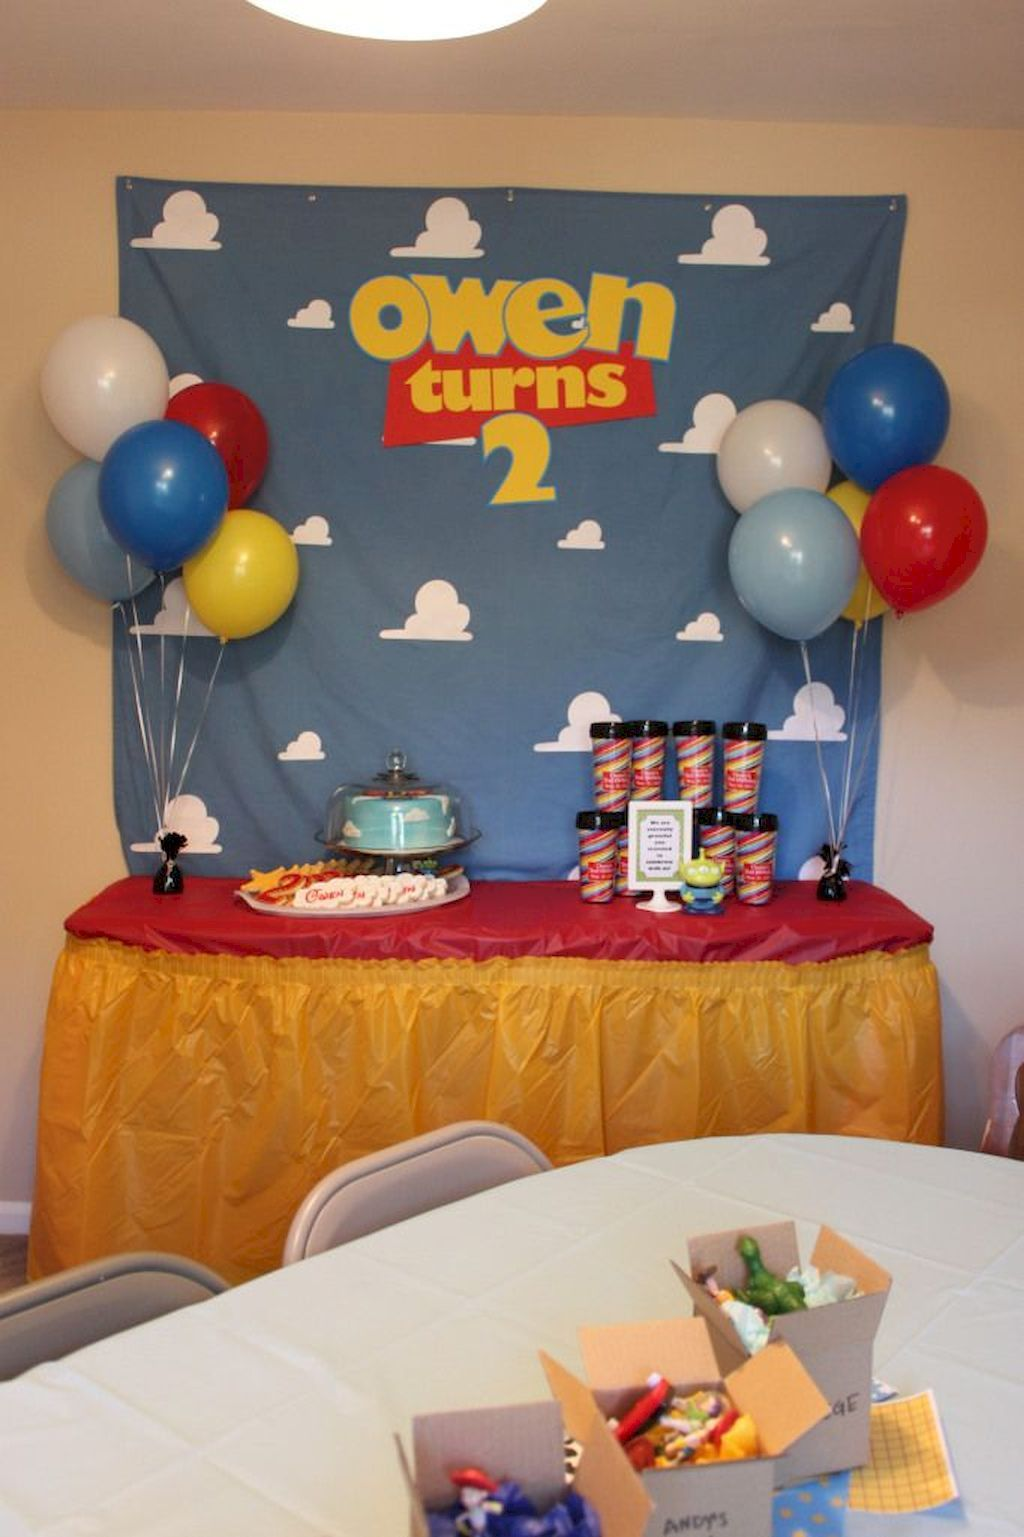 Athouse youngsterss birthday events can be enjoyable and